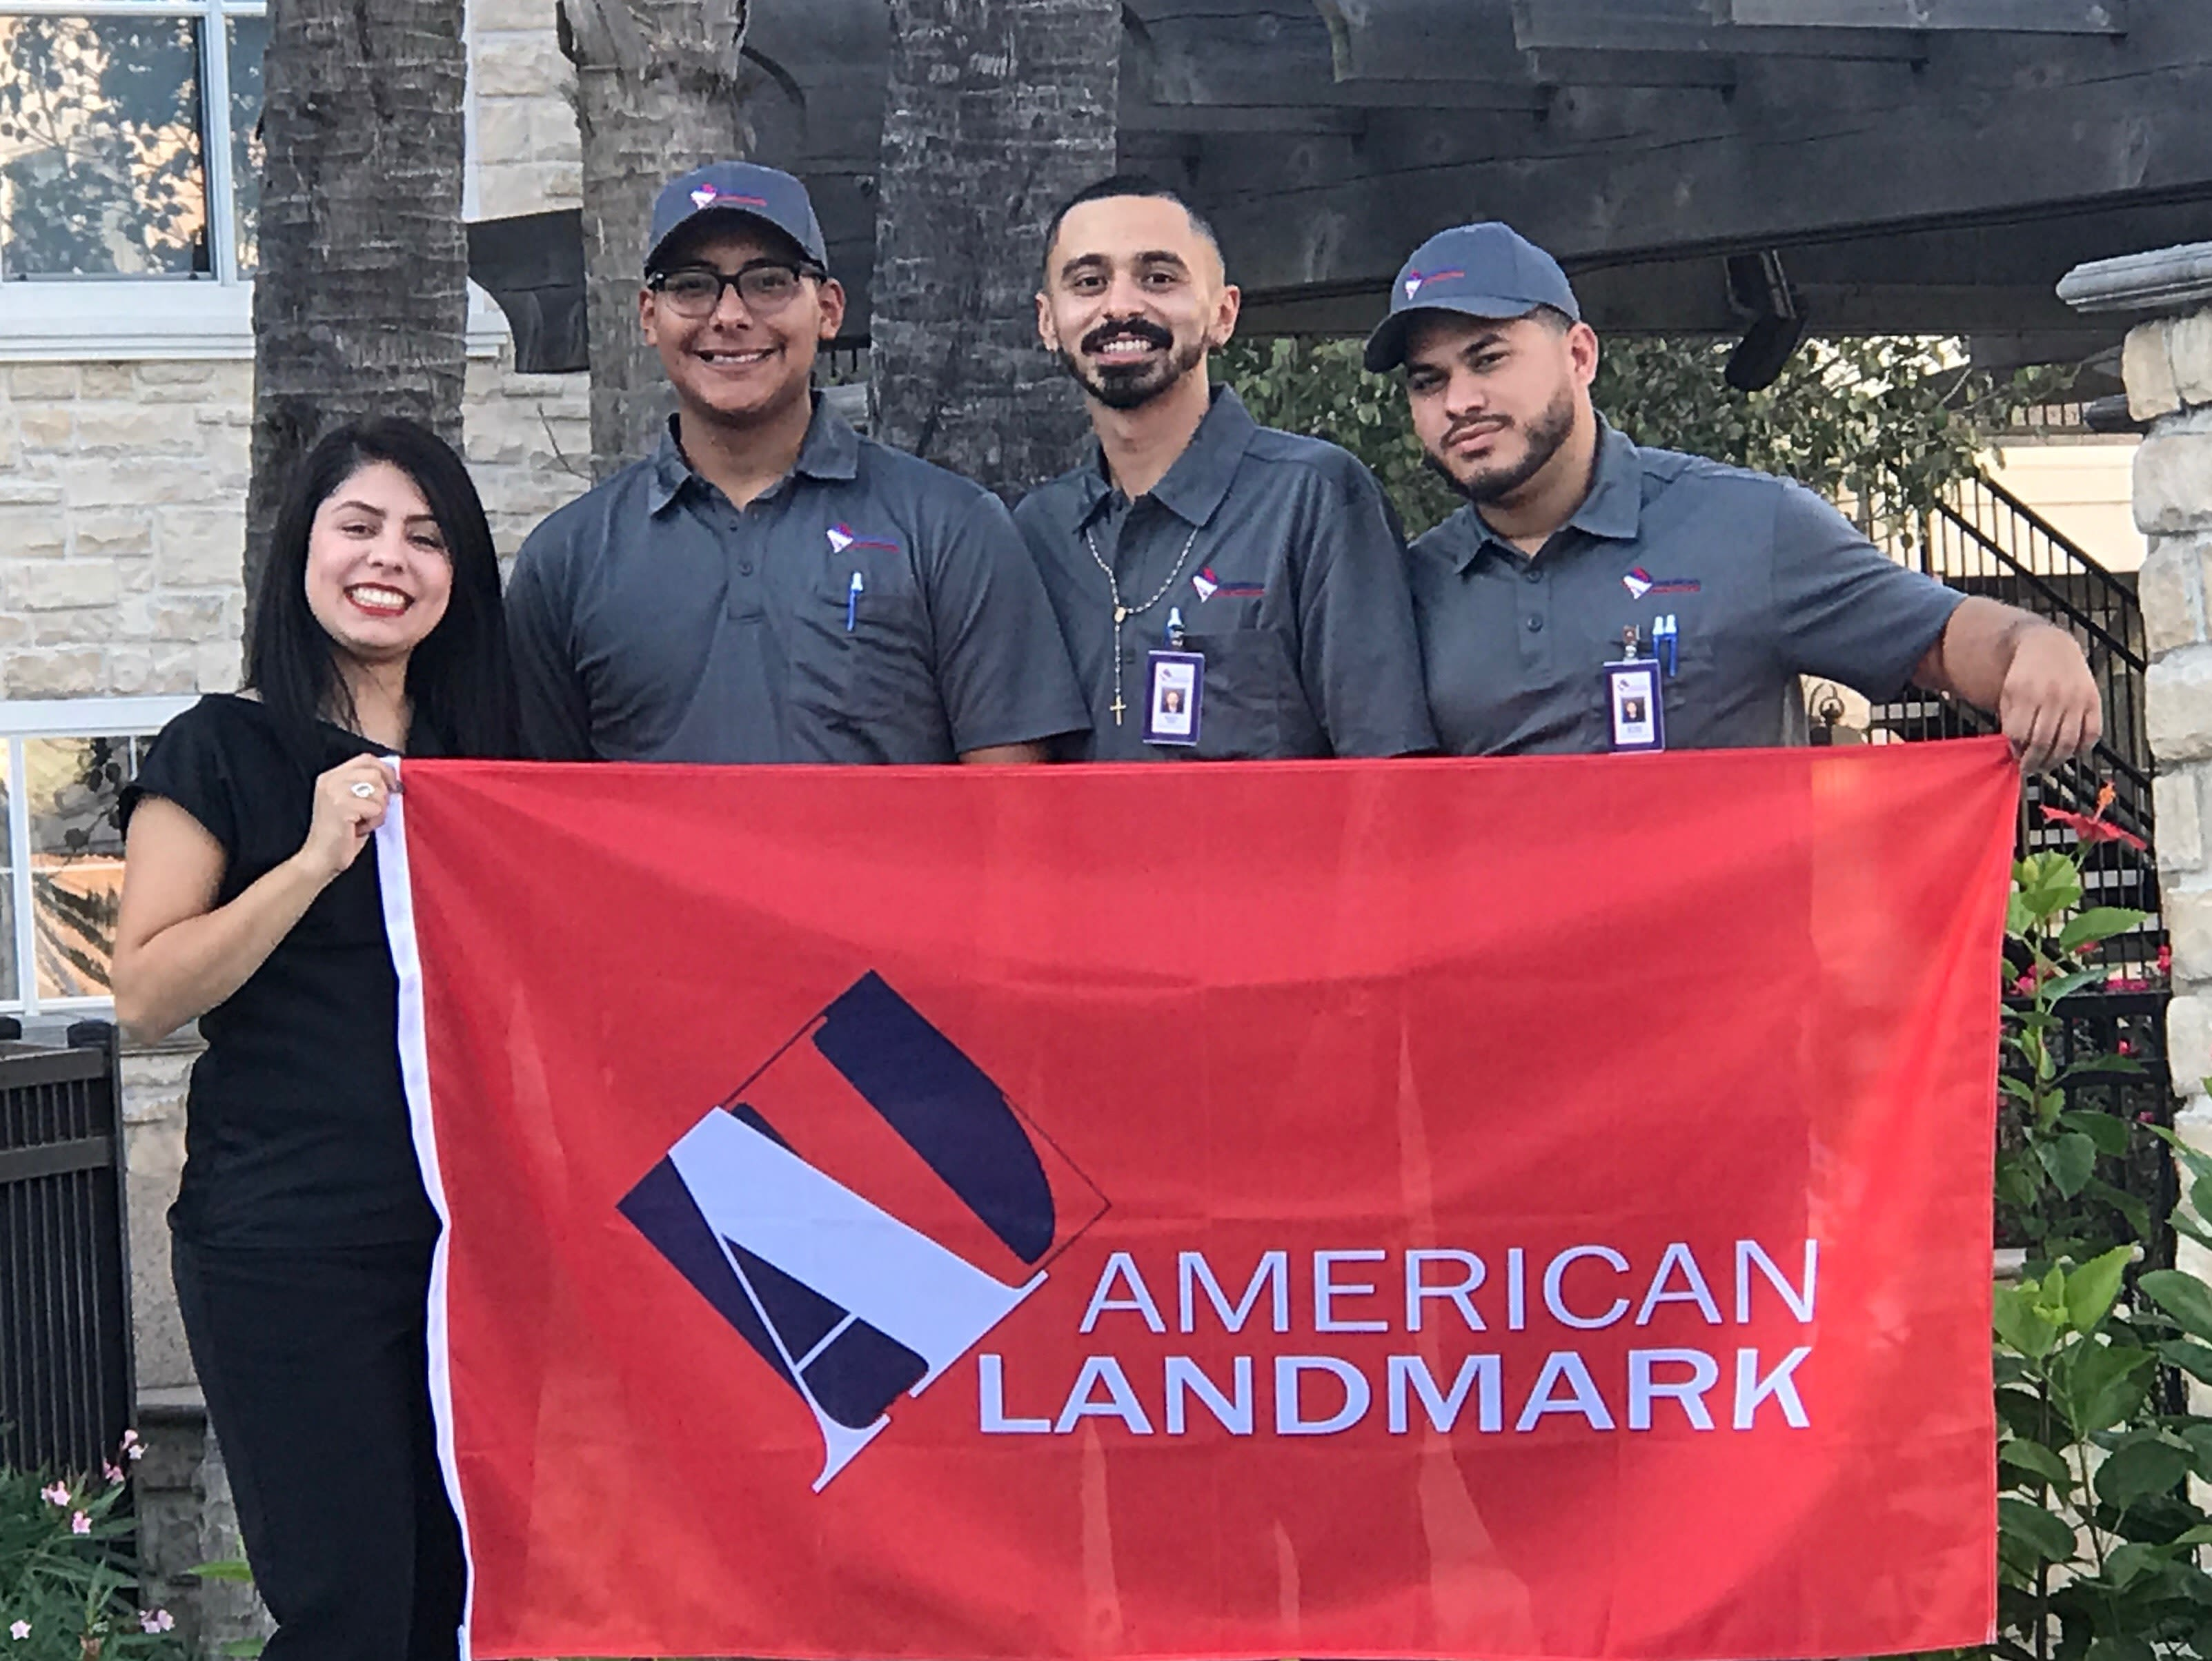 Join our team - American Landmark